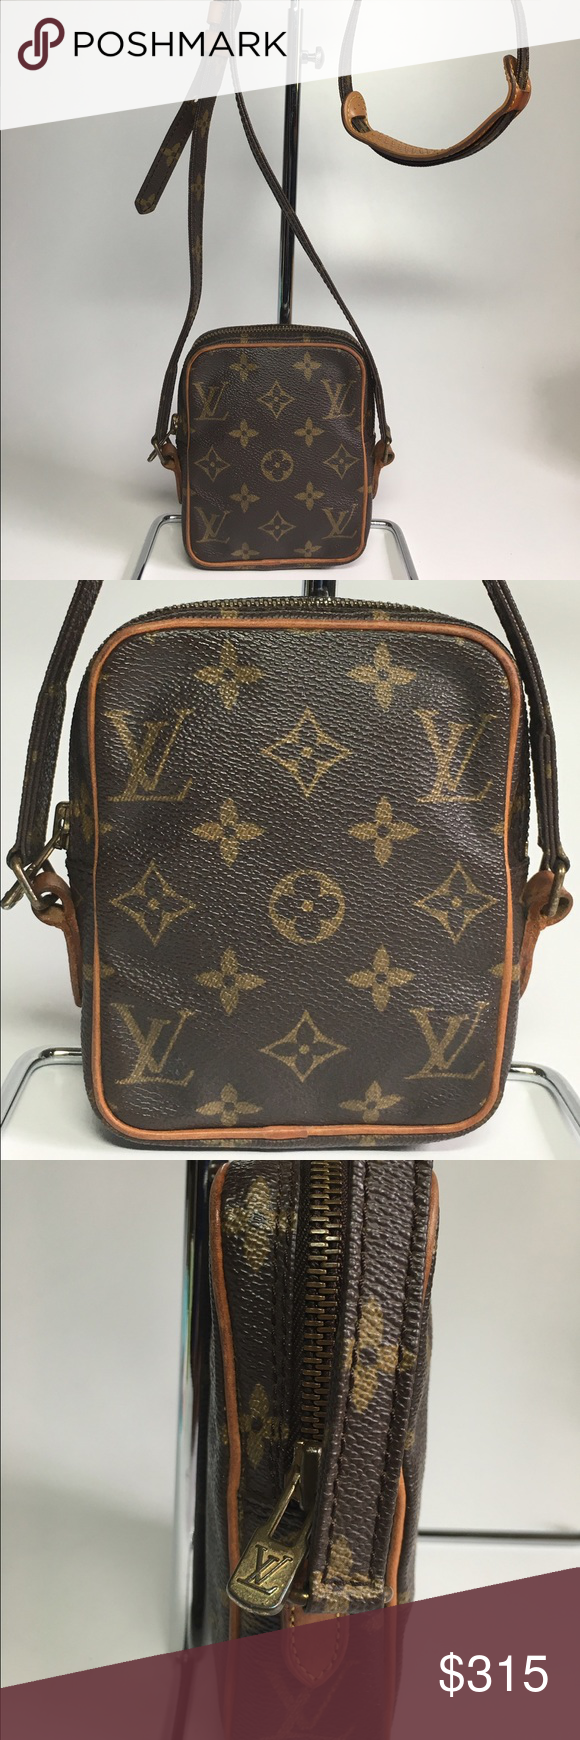 a65c8bbe8aa3 Authentic Louis Vuitton Mini Crossbody Bag % Authentic LOUIS VUITTON Mini  Shoulder Crossbody Bag in monogram . This vintage Crossbody bag is really  in ...